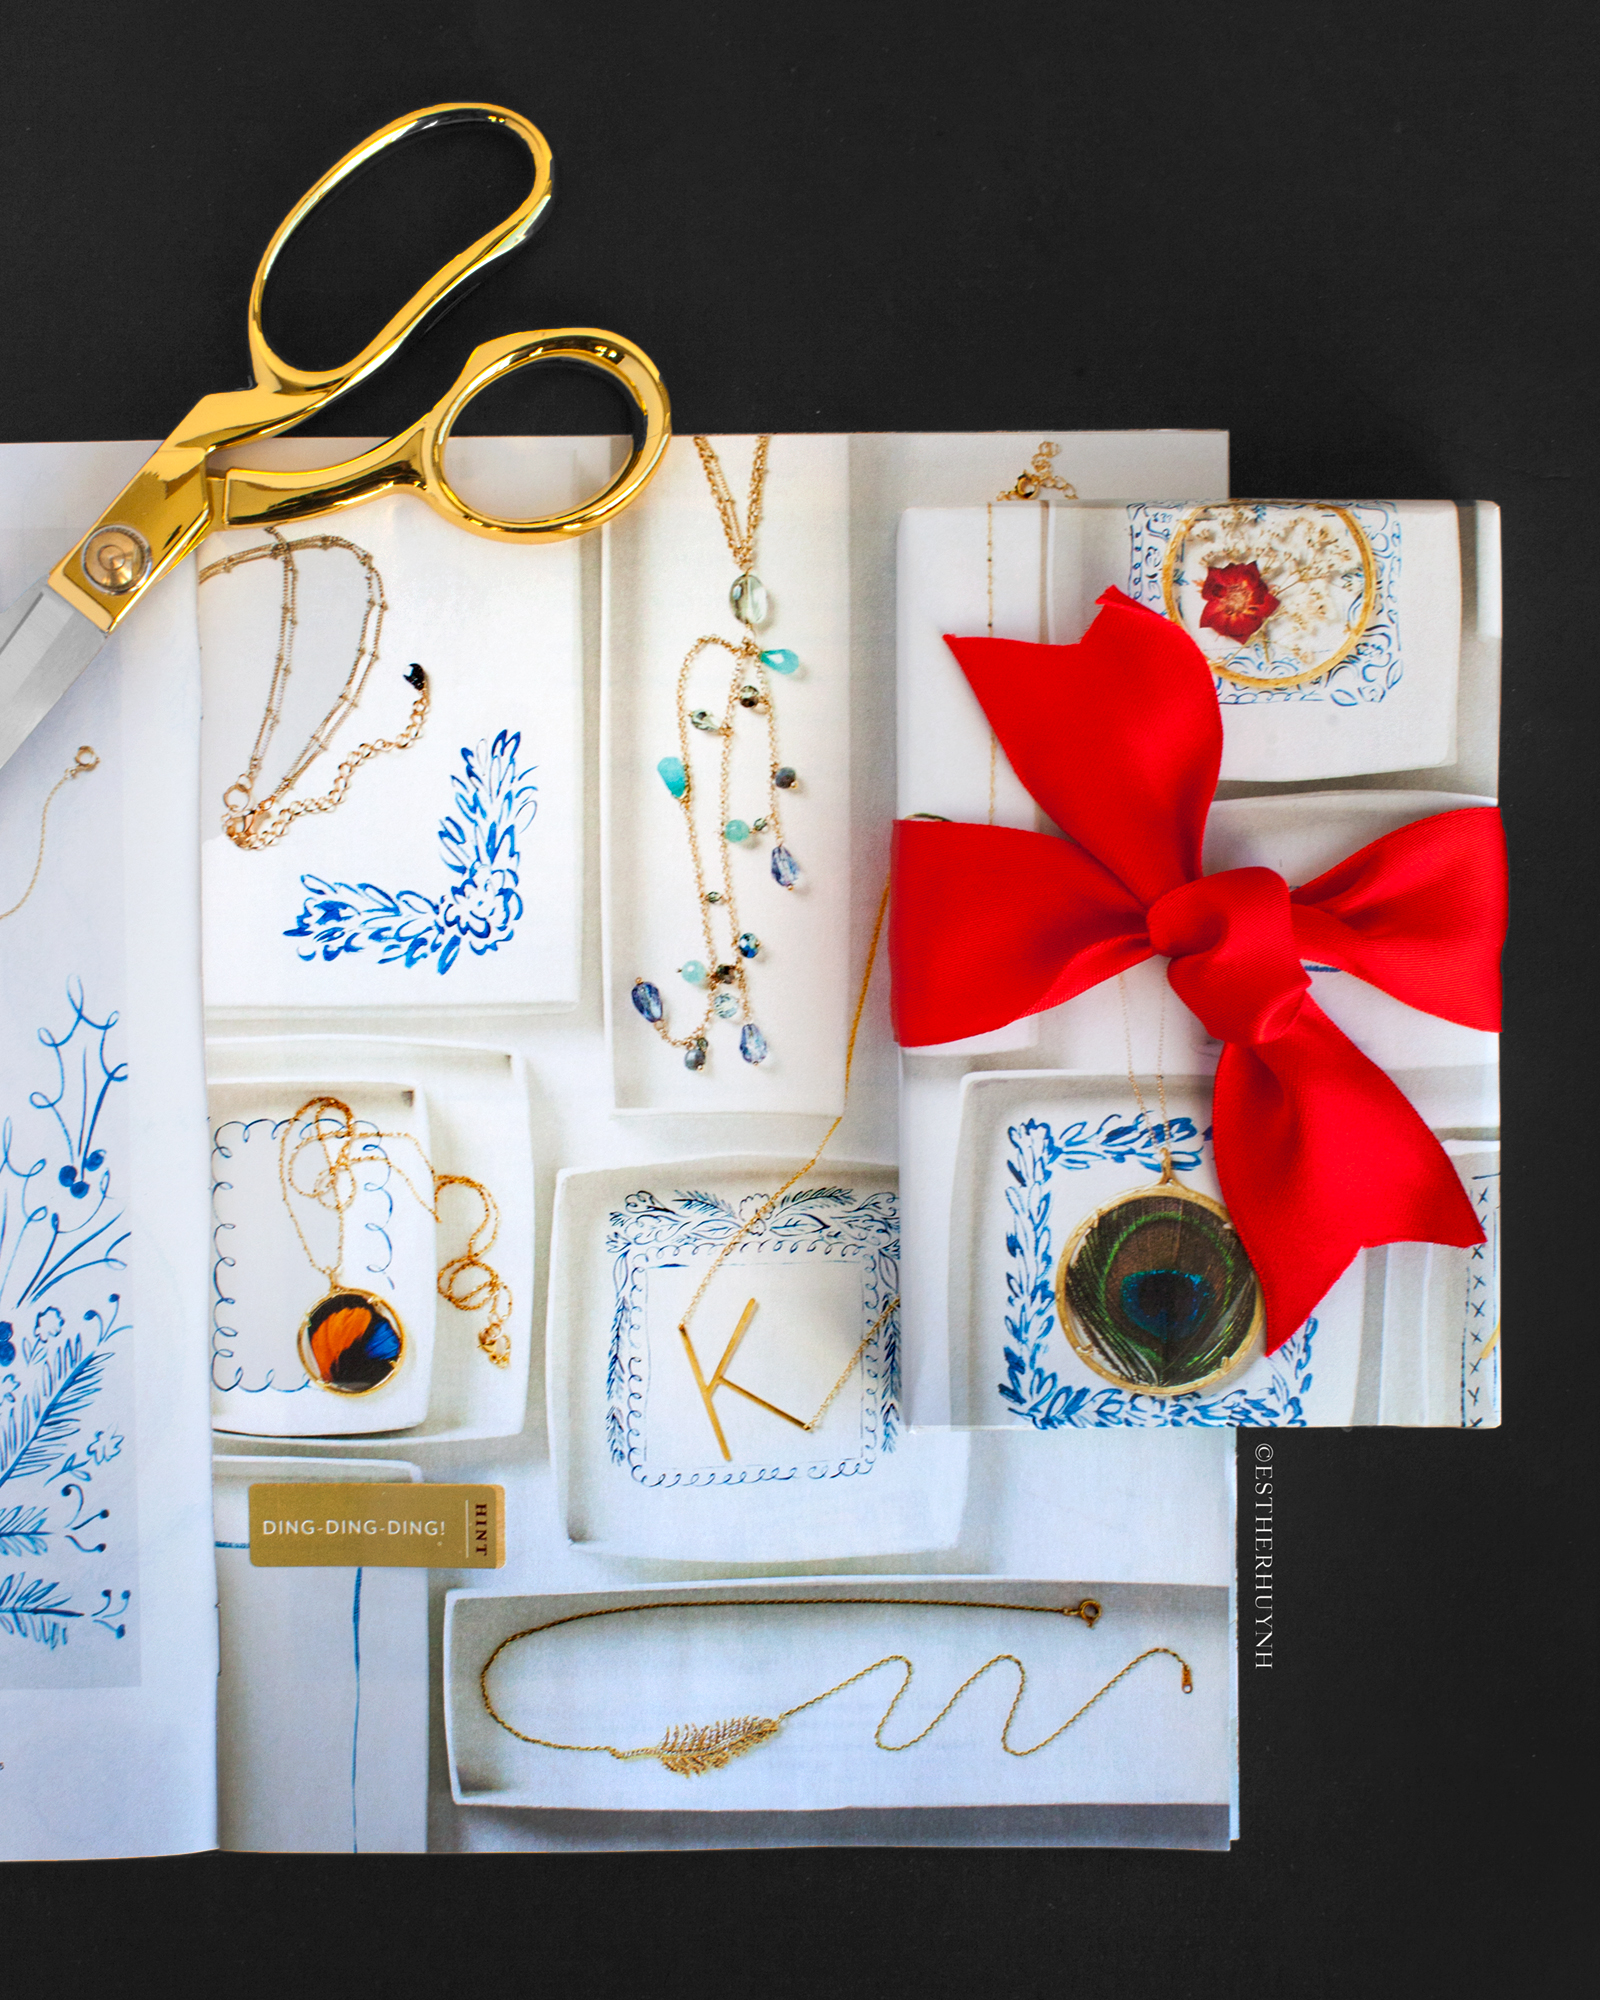 WHEN CHOOSING THE RIGHT PAGE FOR WRAPPING, FIND PAGES THAT HAVE PATTERNED DESIGNS, TEXTURES, OR BRIGHT COLORS. IN THIS PHOTO, I FOUND A FULL SPREAD OF JEWELRY TRAYS & DISHES THAT ACTED LIKE A PATTERN.